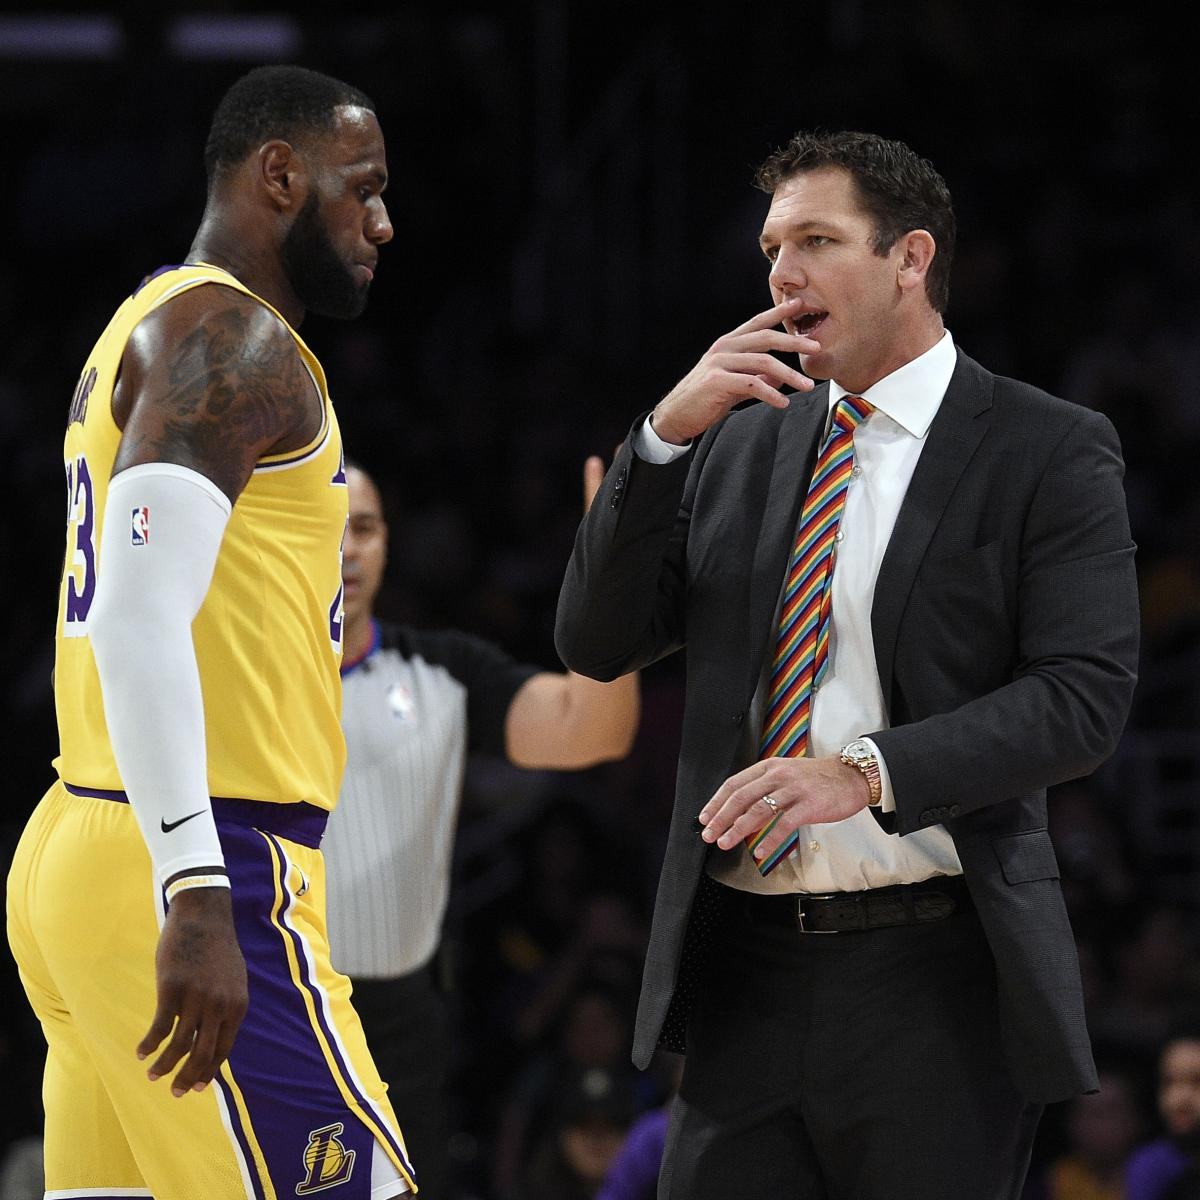 Portland Trail Blazers Coach: LeBron James Gives Luke Walton Vote Of Confidence After